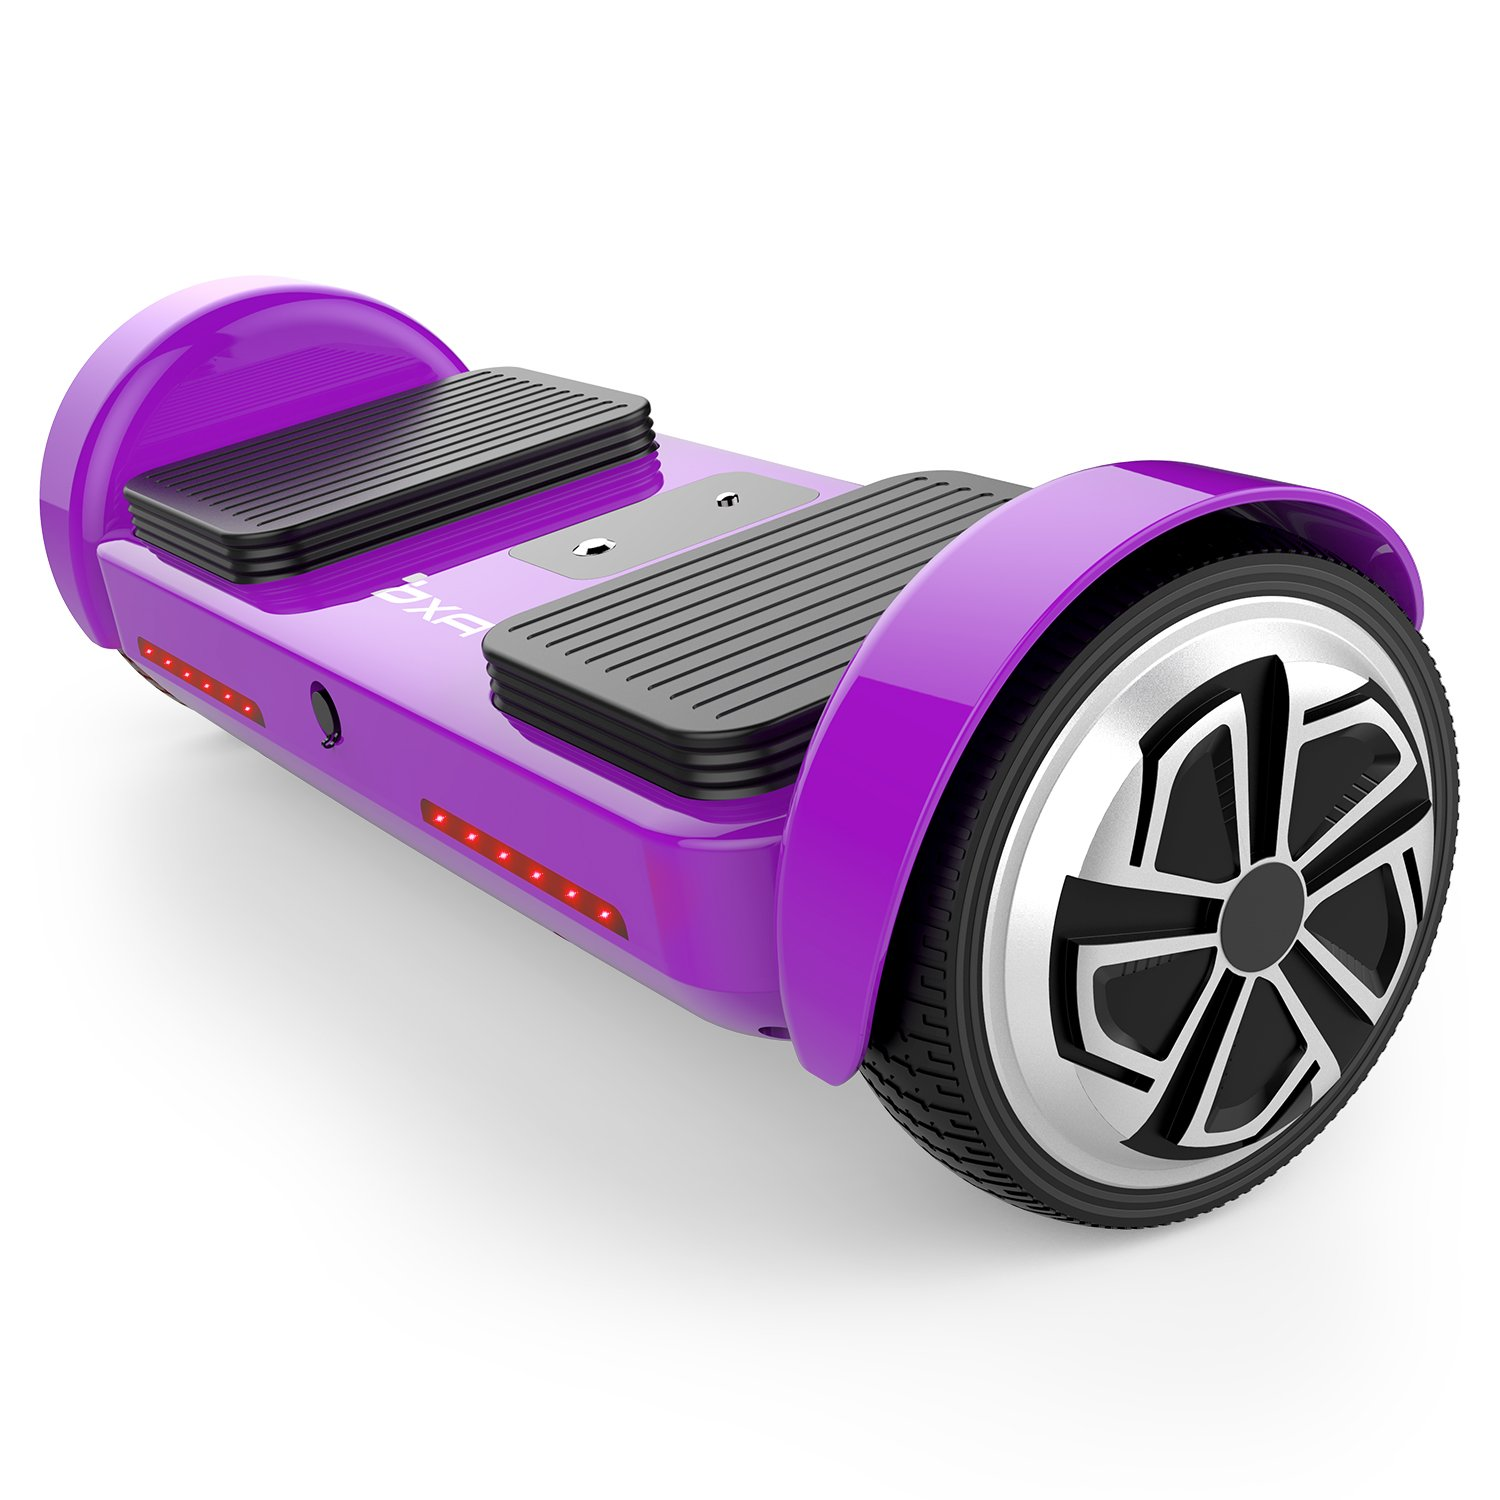 OXA Hoverboard - UL2272 Certified Self Balancing Scooter with Bluetooth Speaker and Headlights, 20 lithium batteries (144 Wh) ensure 17 km range on a single charge, 2 modes for all ages (2)